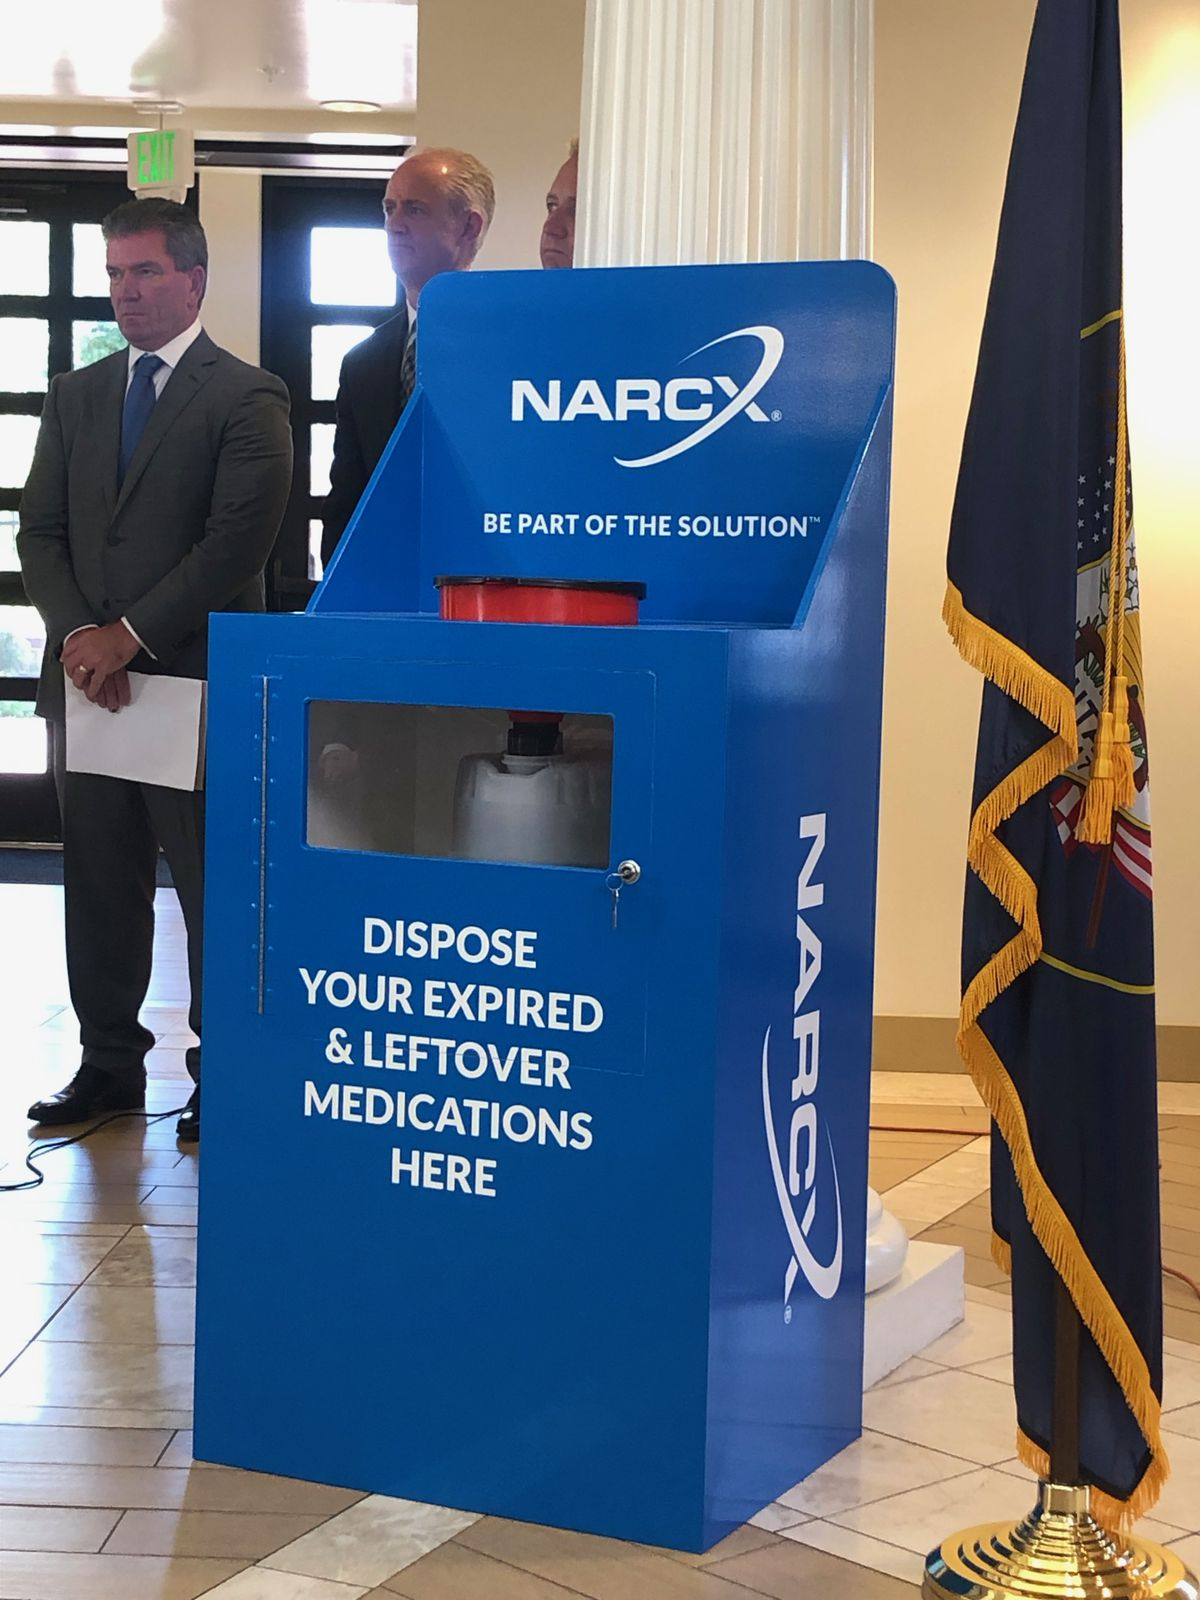 In a local effort to repress the stockpiling and diversion of opioids, Riverton will roll out six kiosks throughout the city that will allow residents to safely dispose of their unused pills and other drugs. The kiosks were unveiled during a press conference at the Old Dome Meeting Hall on Thursday, Sept. 12, 2019.